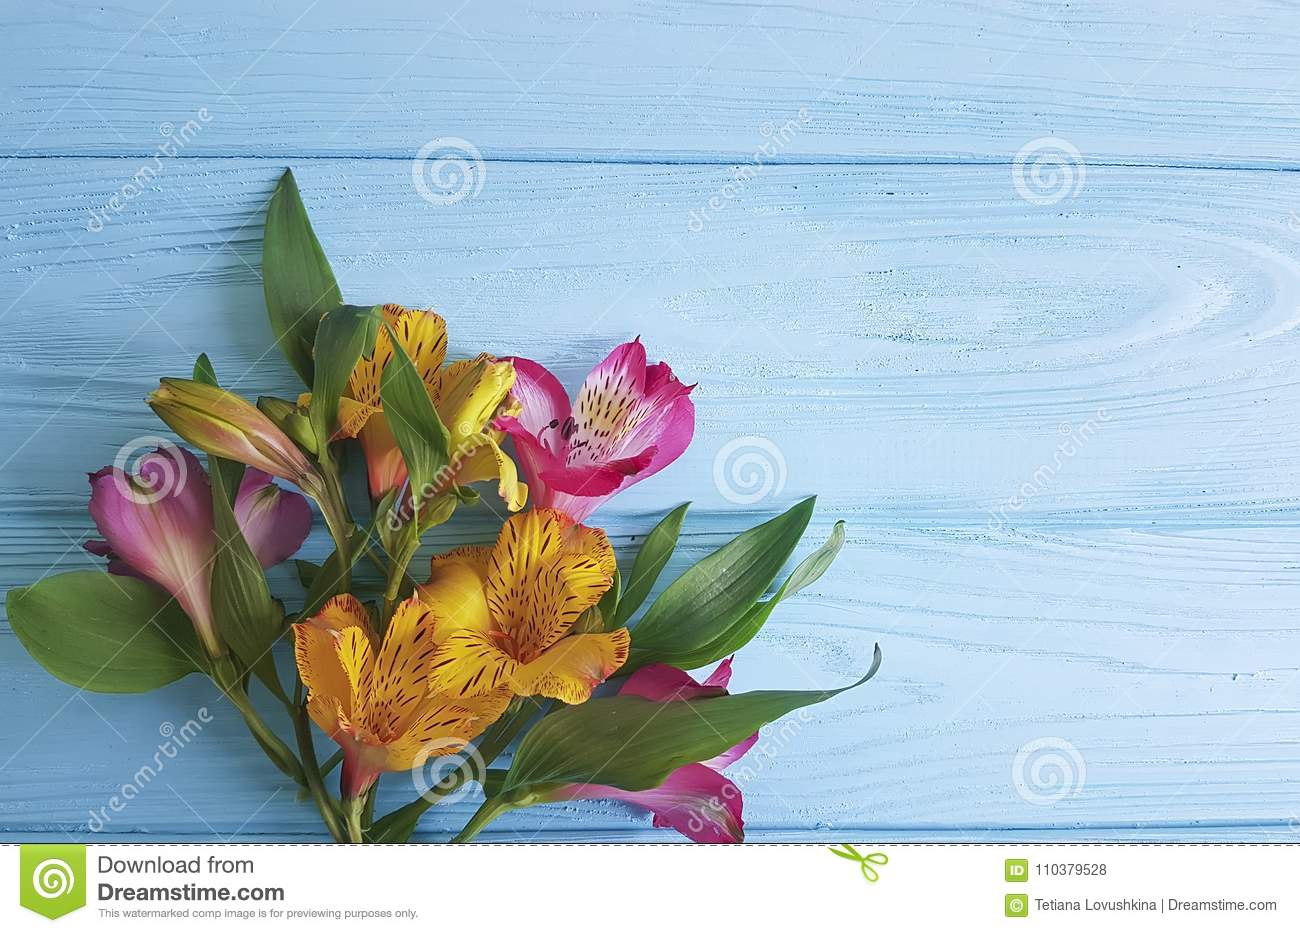 Alstroemeria design on a blue wooden birthday background greeting